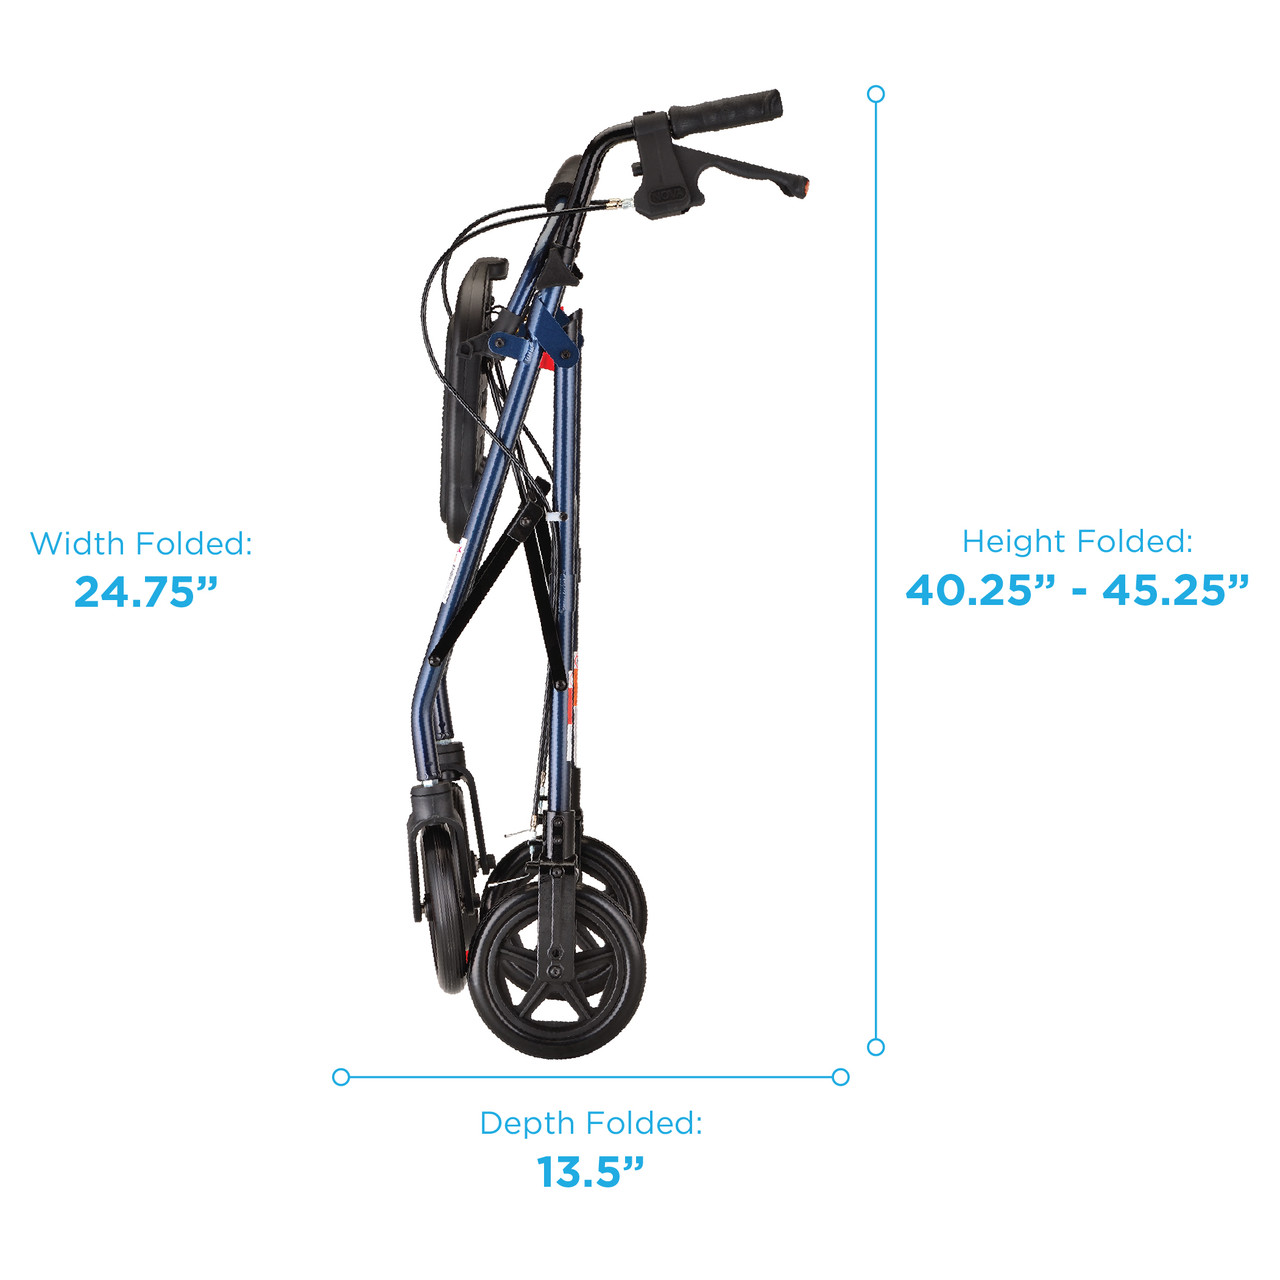 Mack Heavy Duty Rollator folded measurements